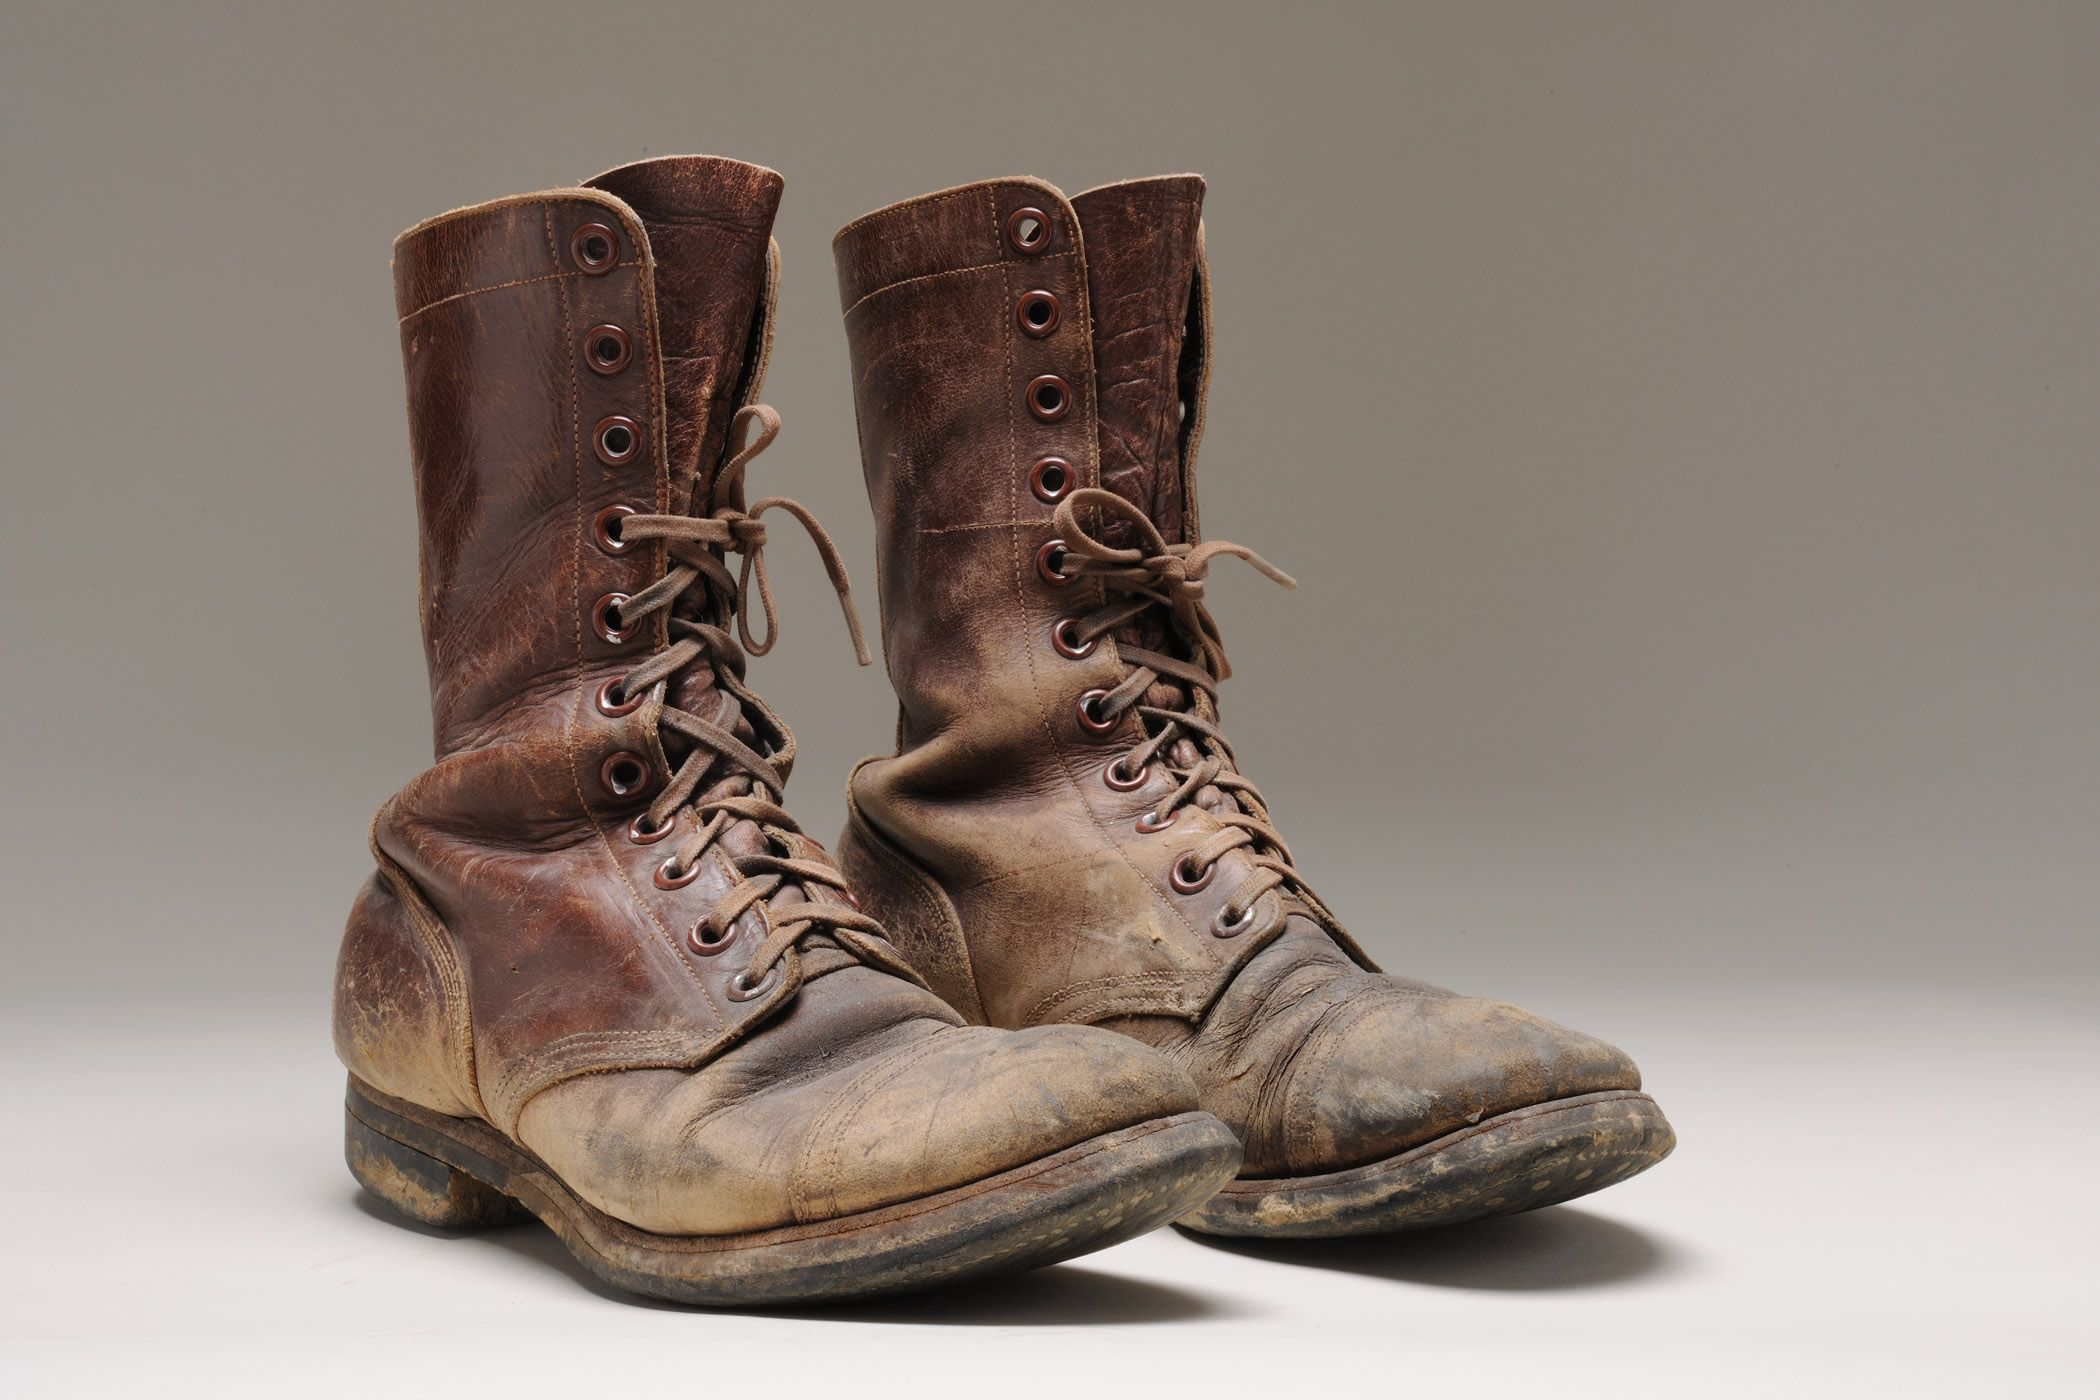 Boot 1950 1955 Mens High Topped Leather Army Boots High Uppers Of Brown Leather Have Round Reinforced Toes And Heels They L Boots Army Boots Combat Boots